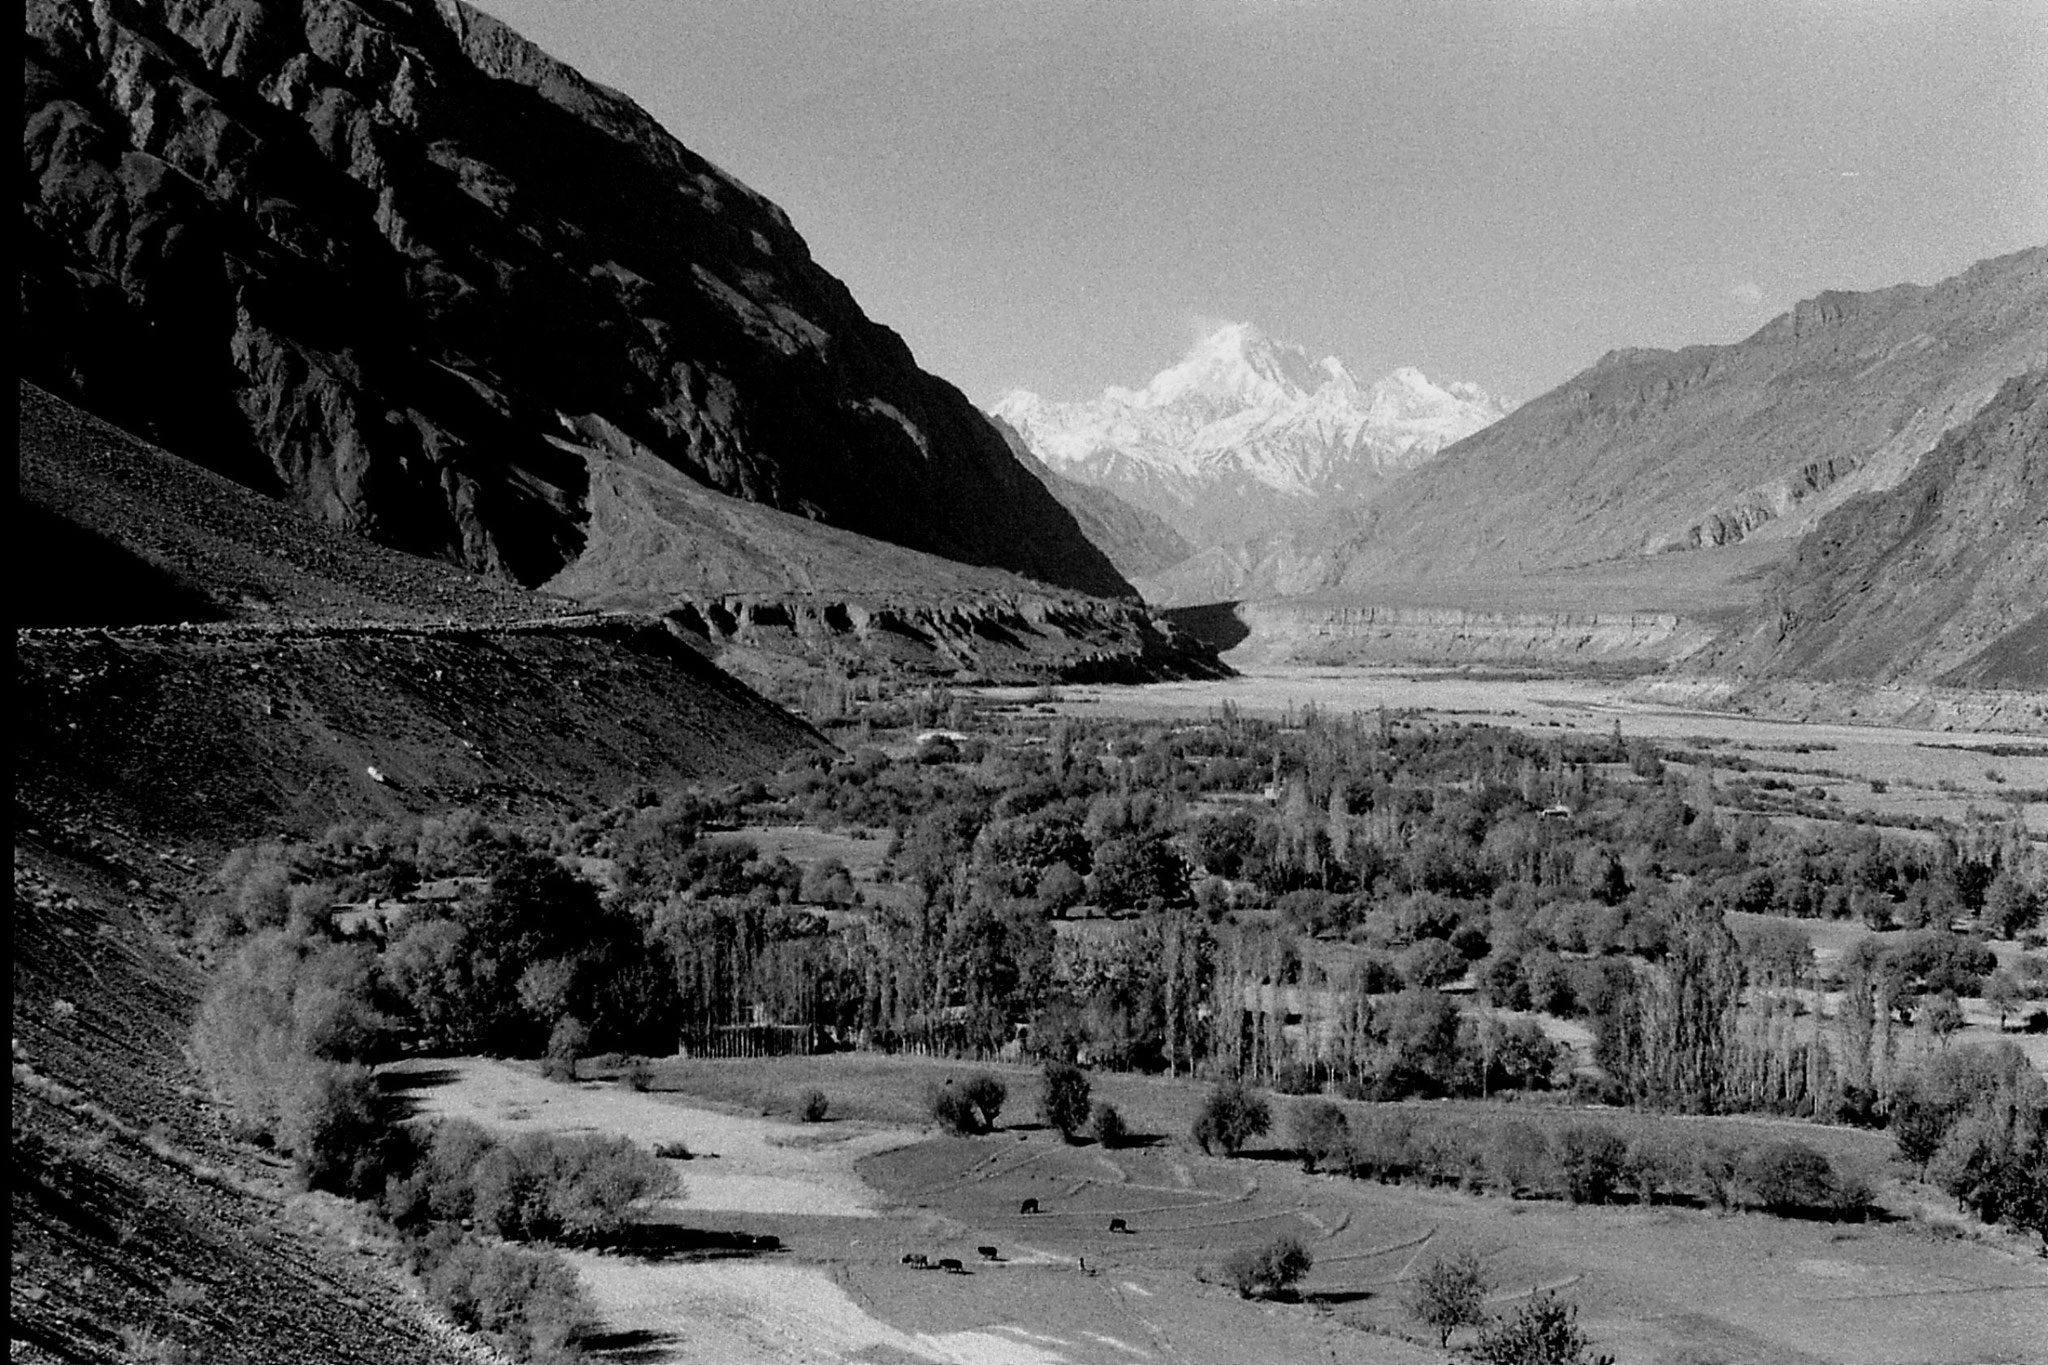 27/10/1989: 14: Sarghoz village and Tirich Mir